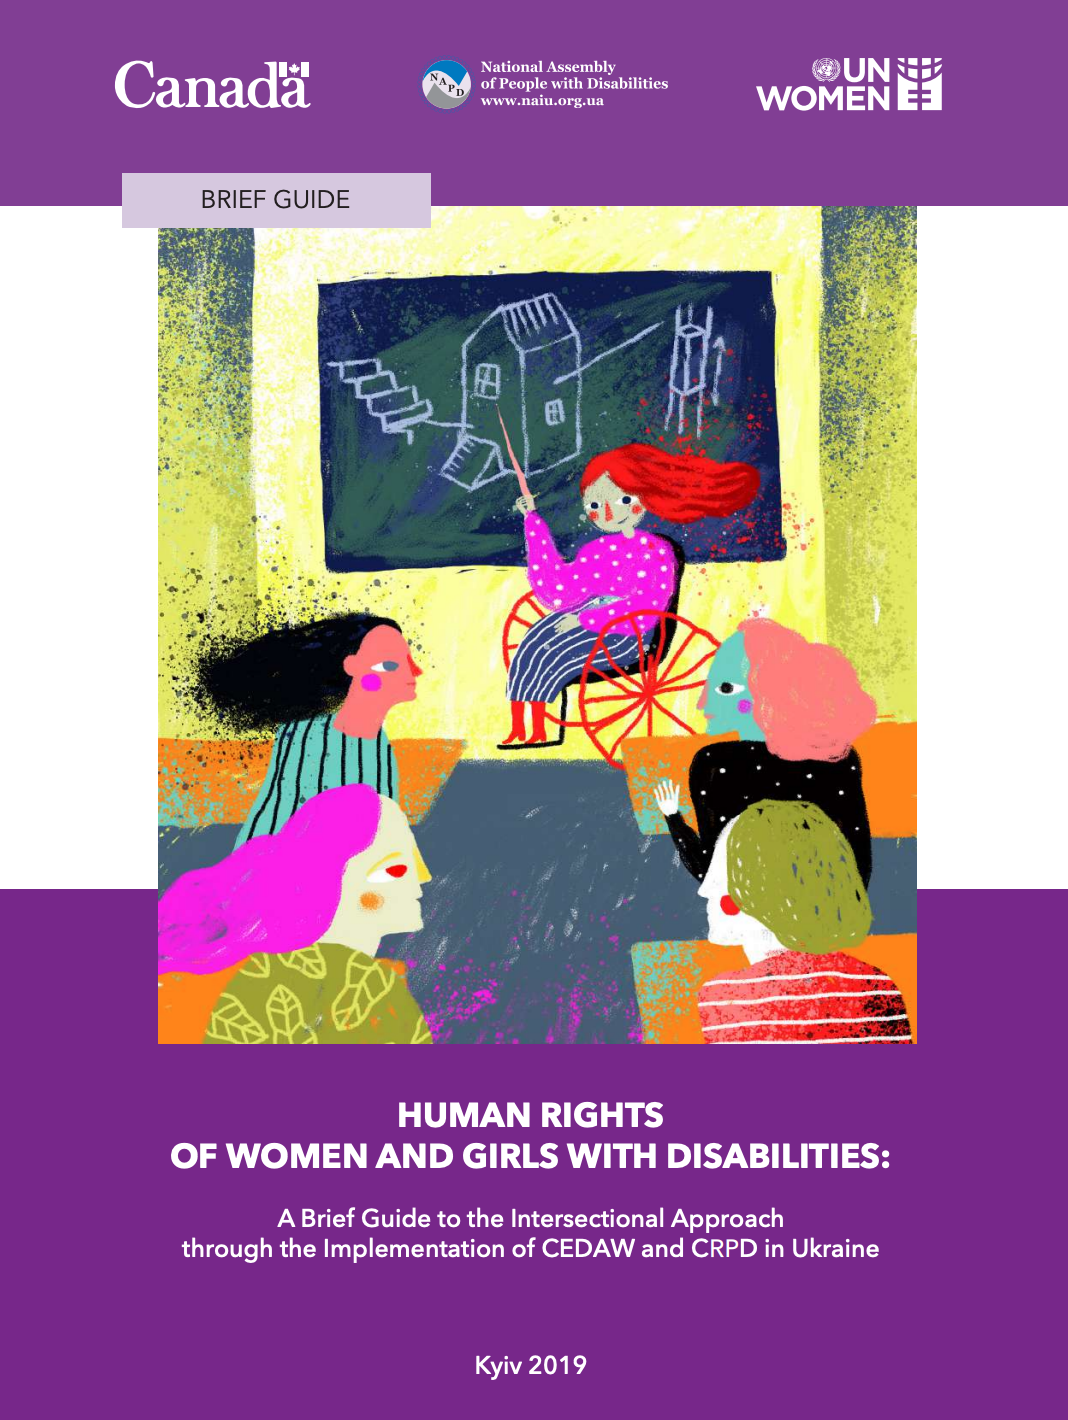 Human Rights of Women and Girls with Disabilities